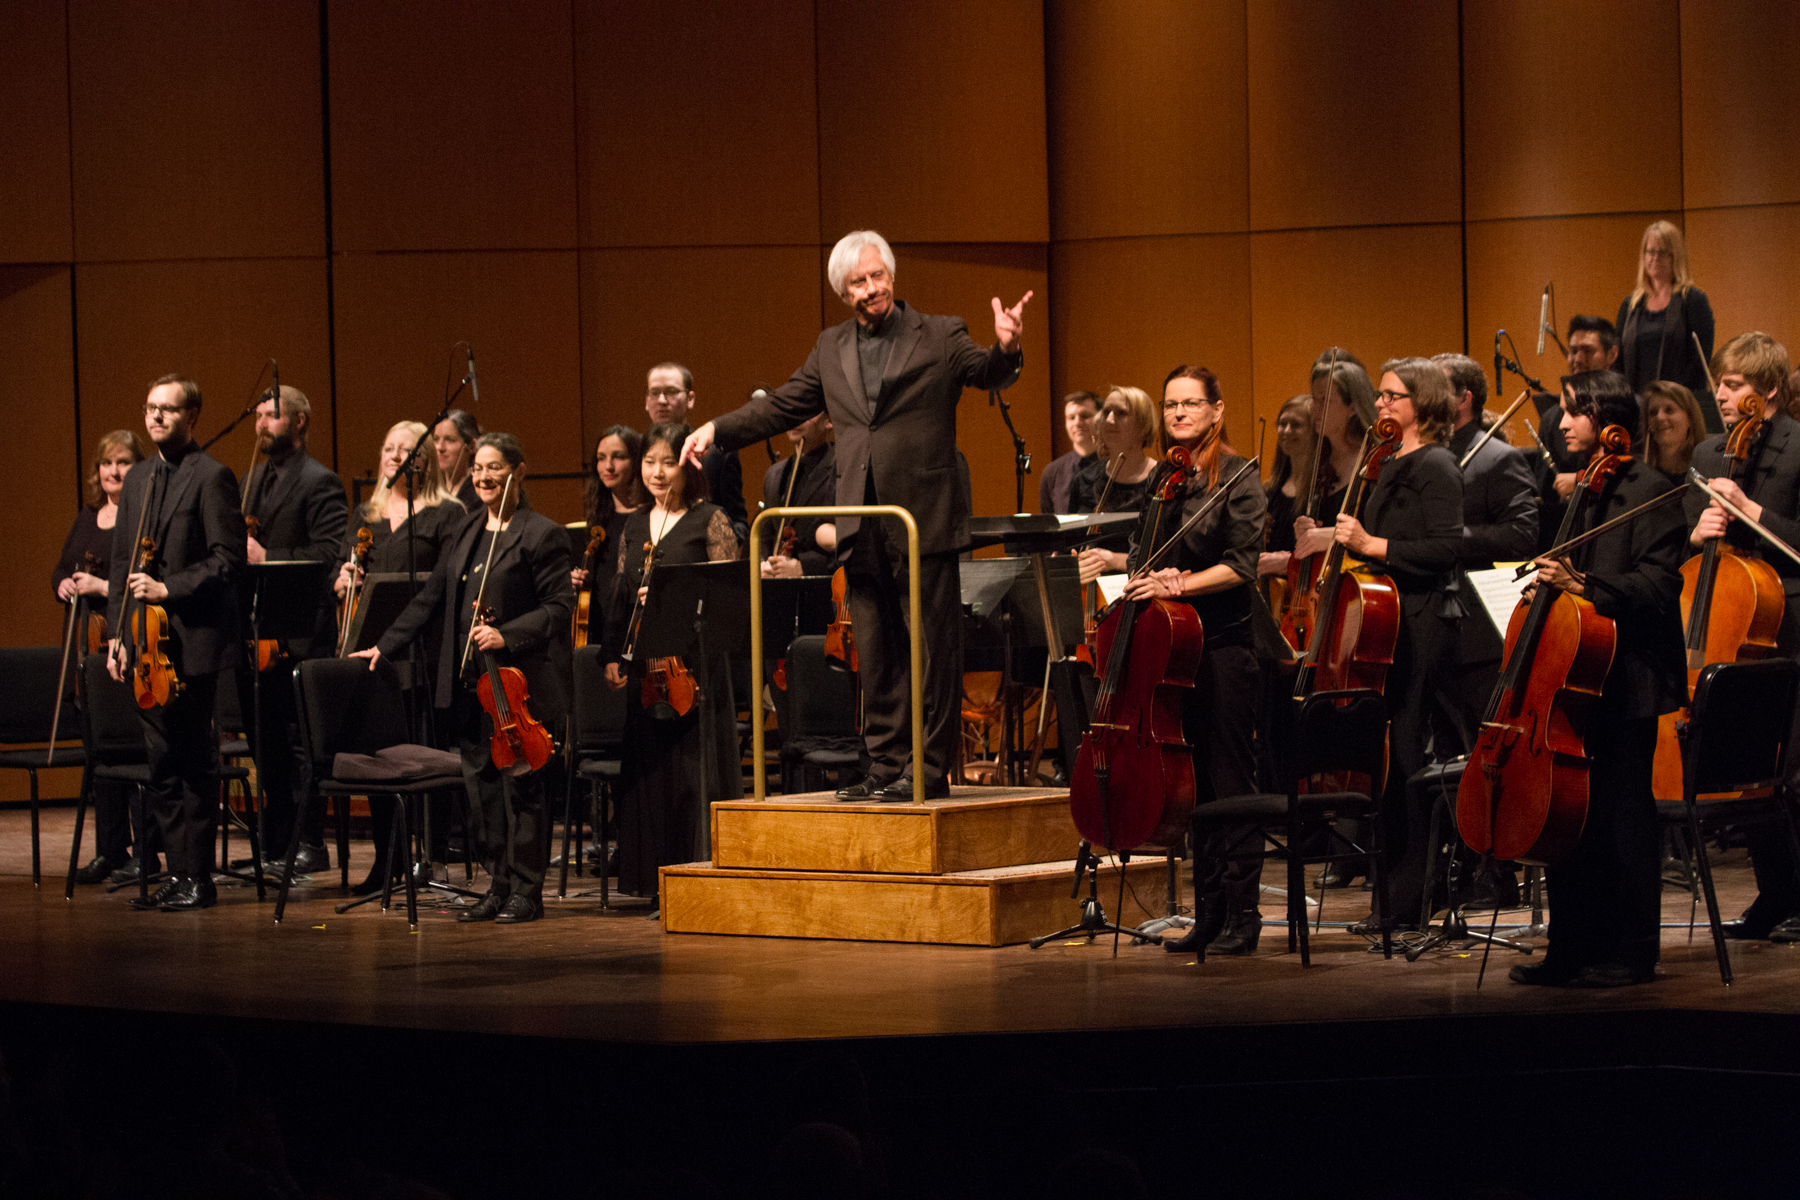 The conductor presents his orchestra with a gesture